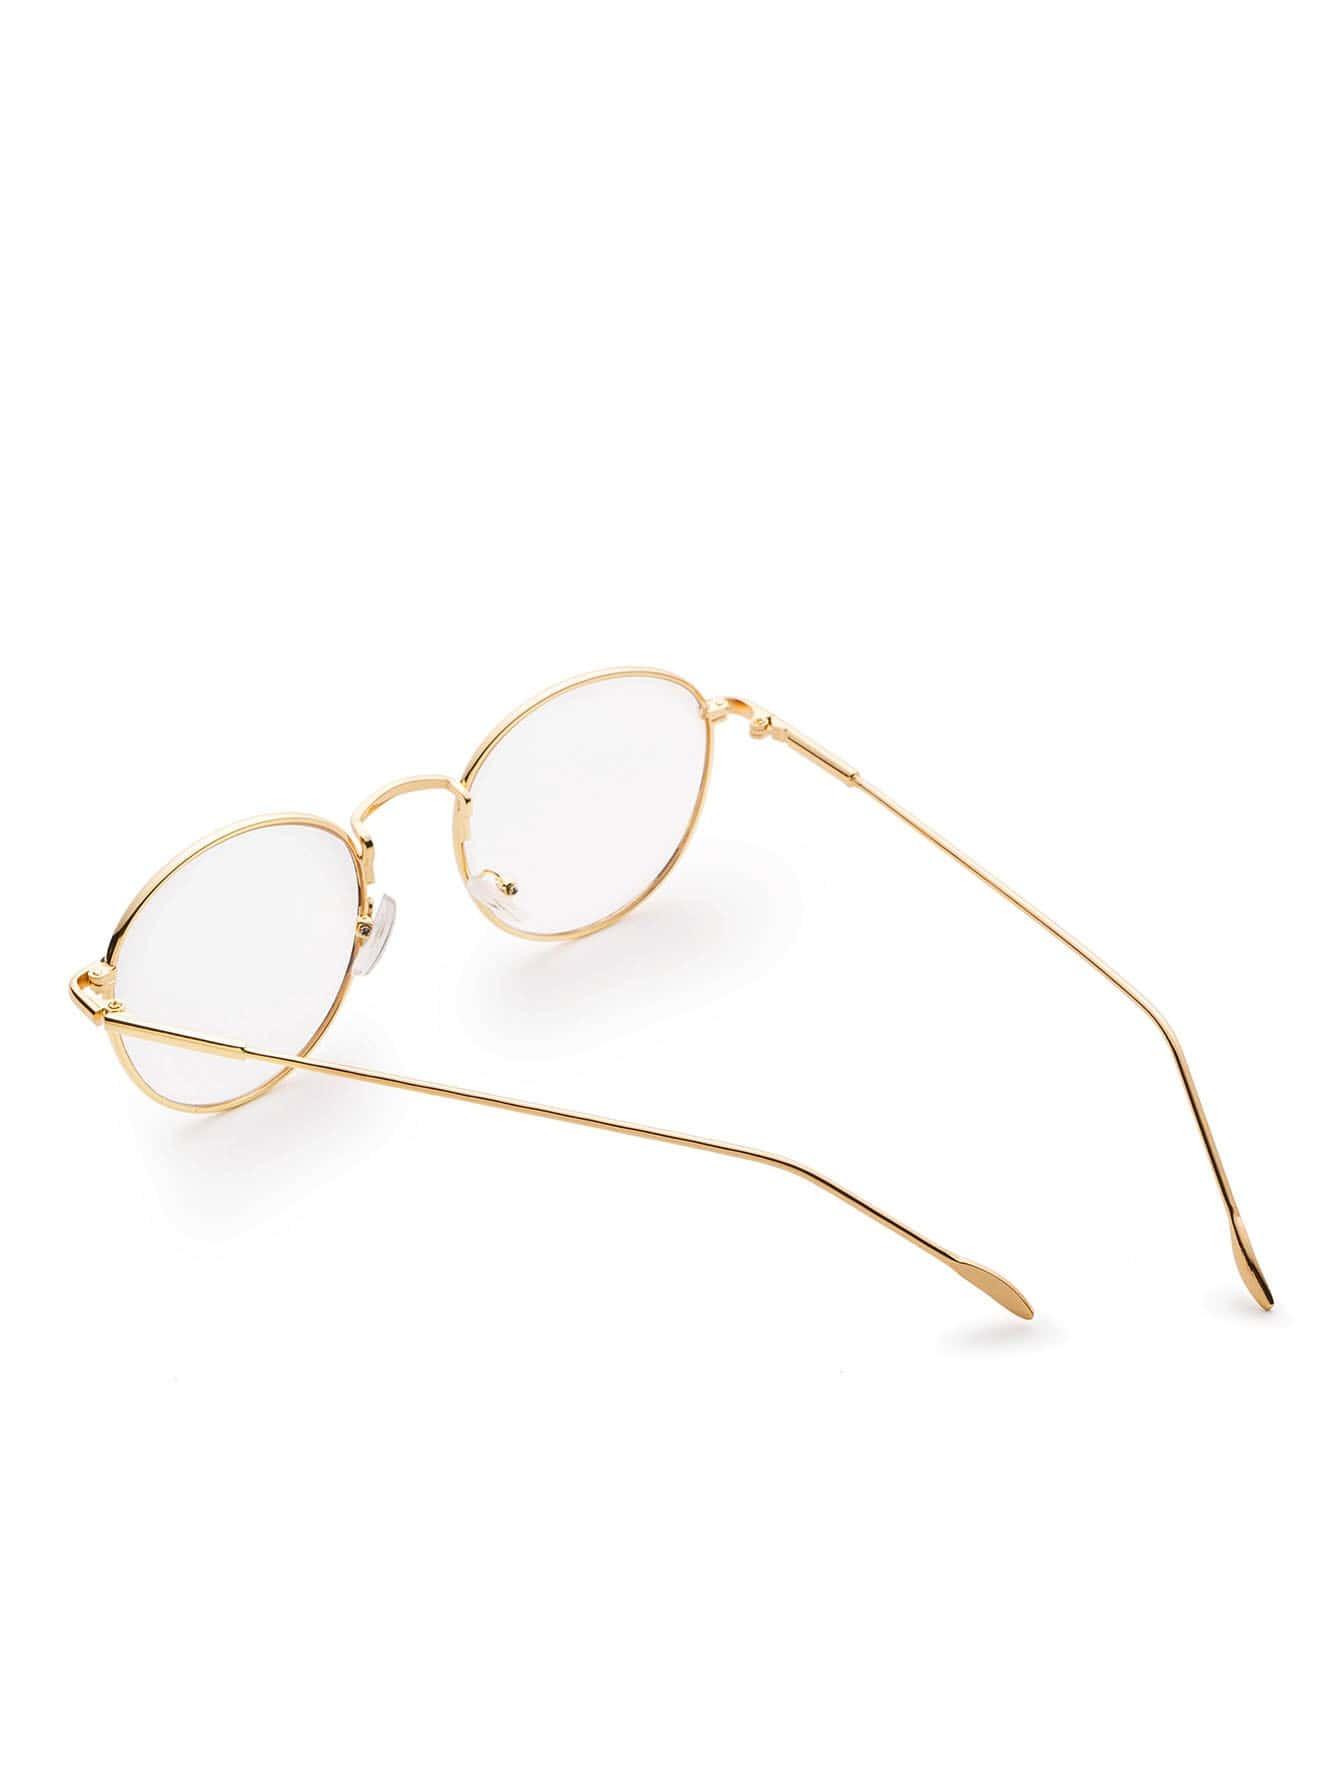 gold frame clear lens glasses sunglass170308303_1 sunglass170308303_1 sunglass170308303_2 sunglass170308303_2 sunglass170308303_2